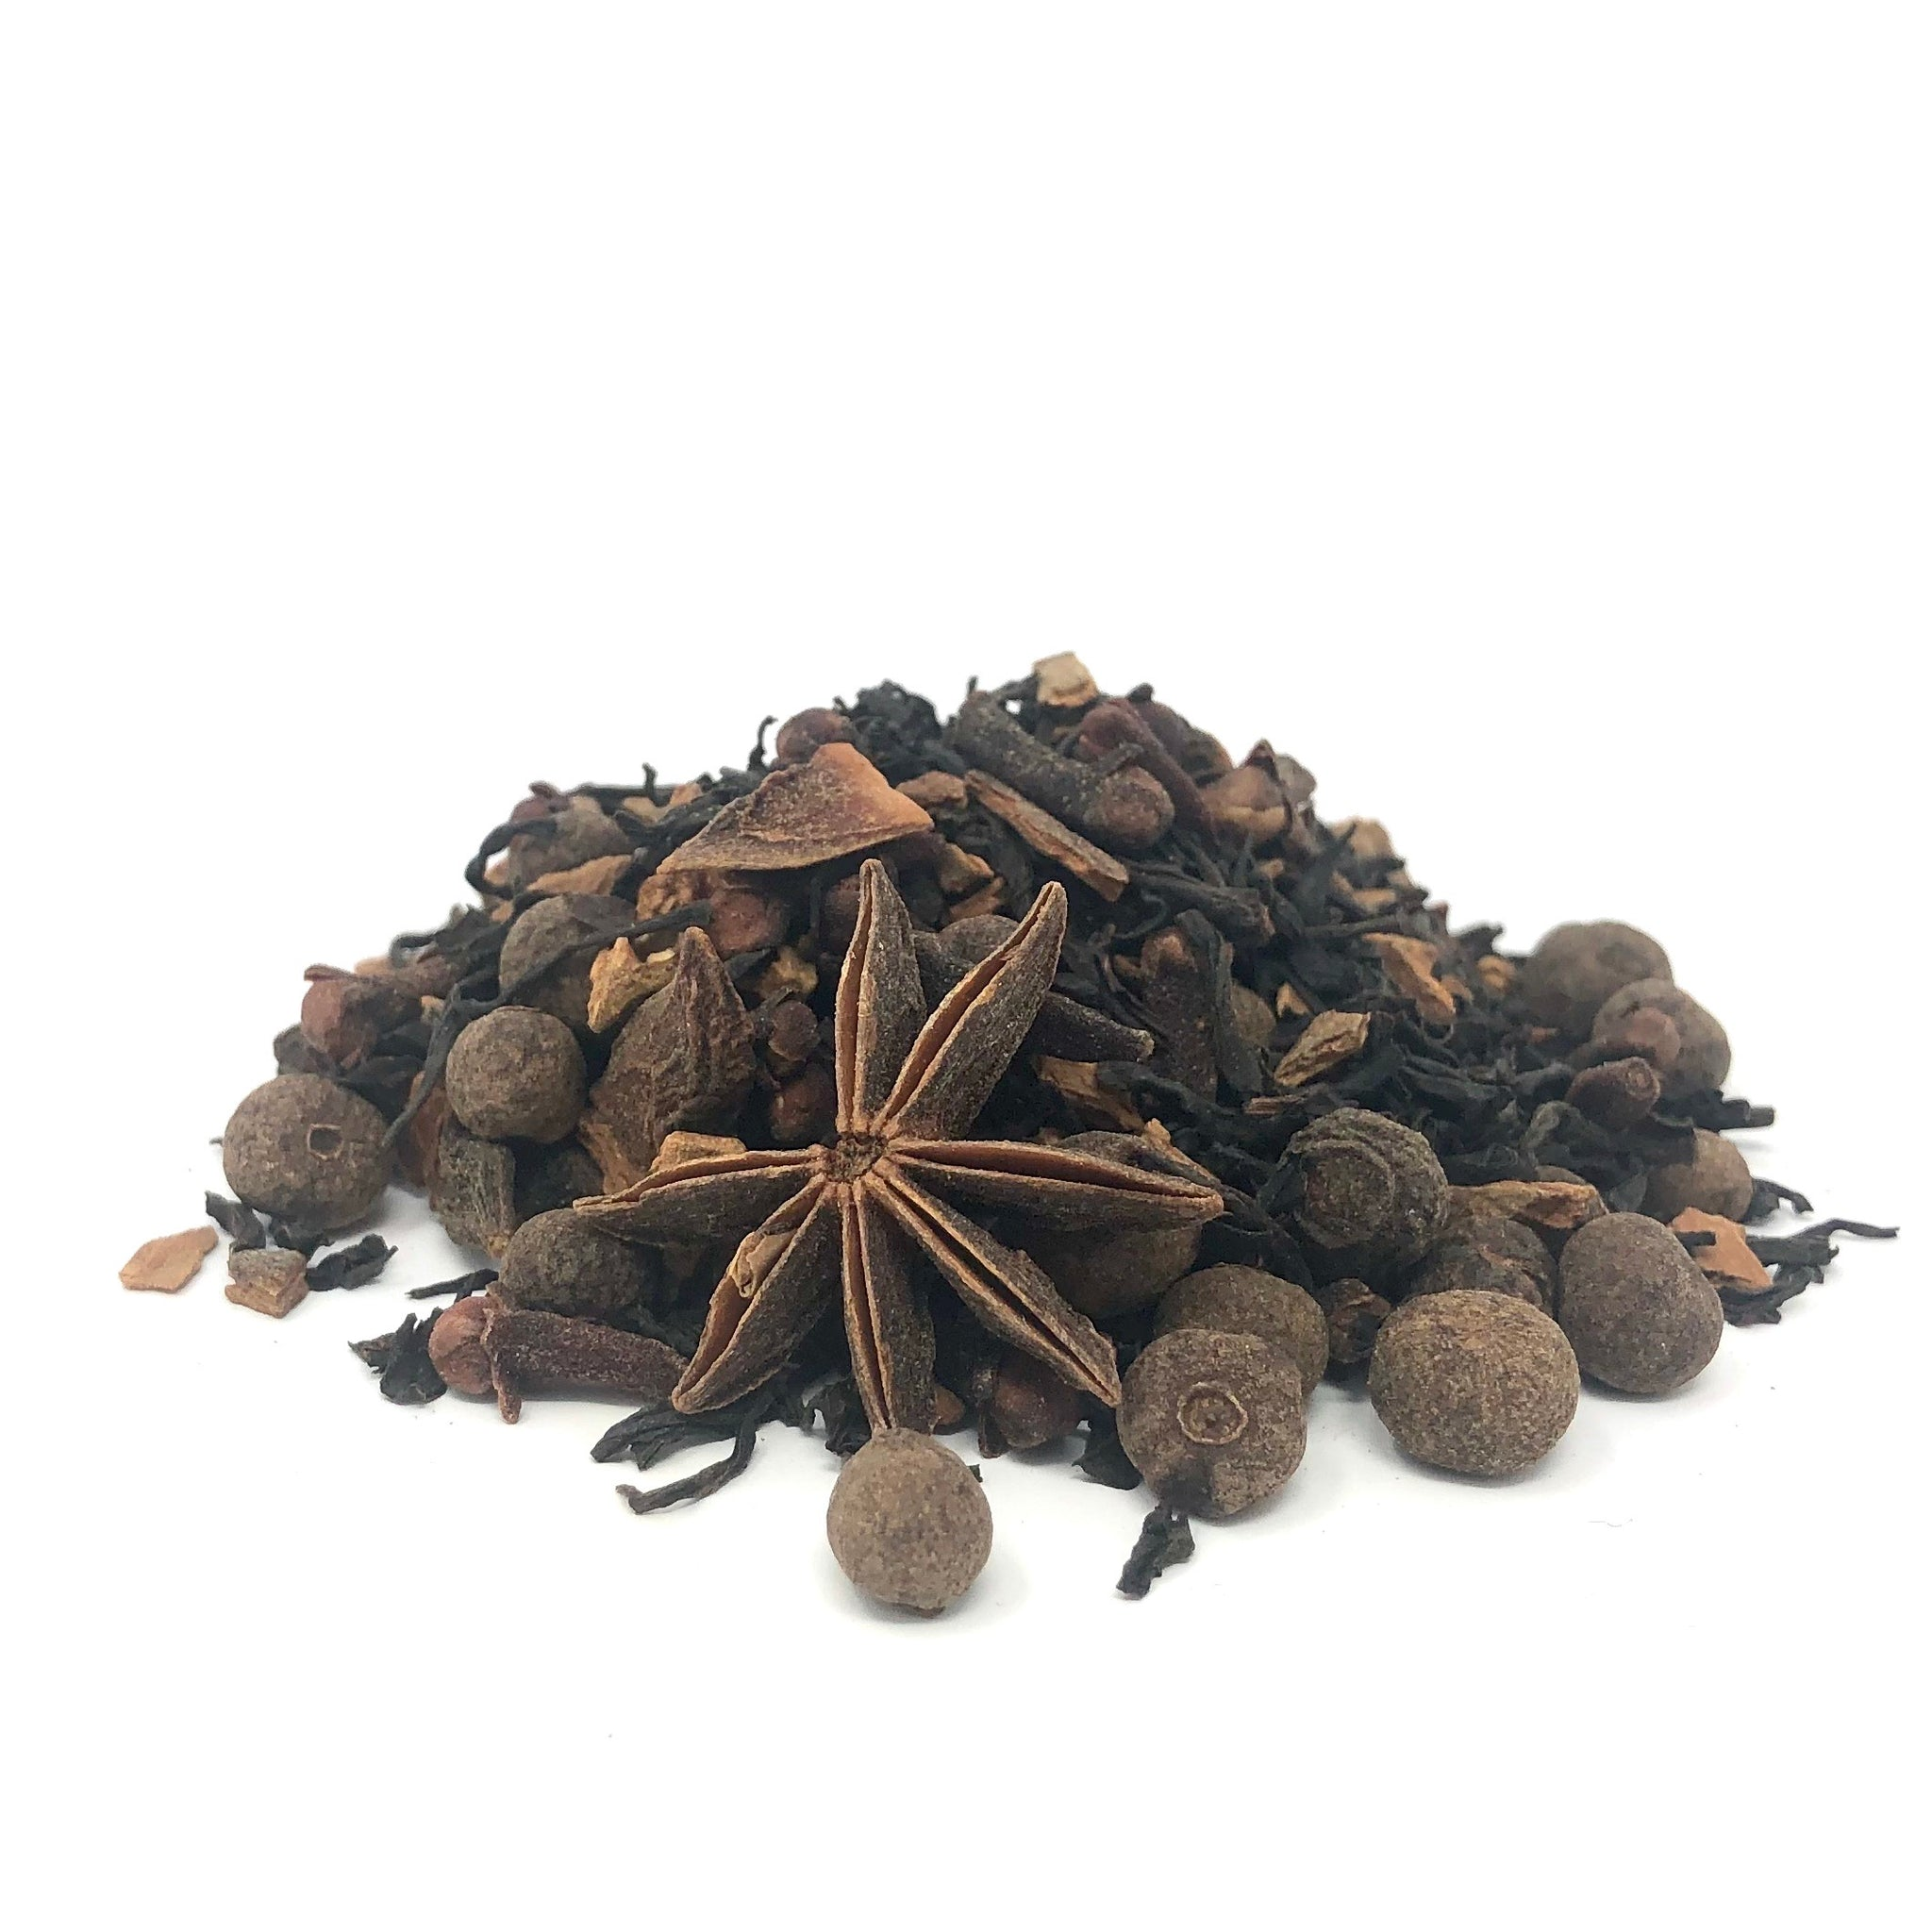 Pumpkin Spice (Black Tea Blend)